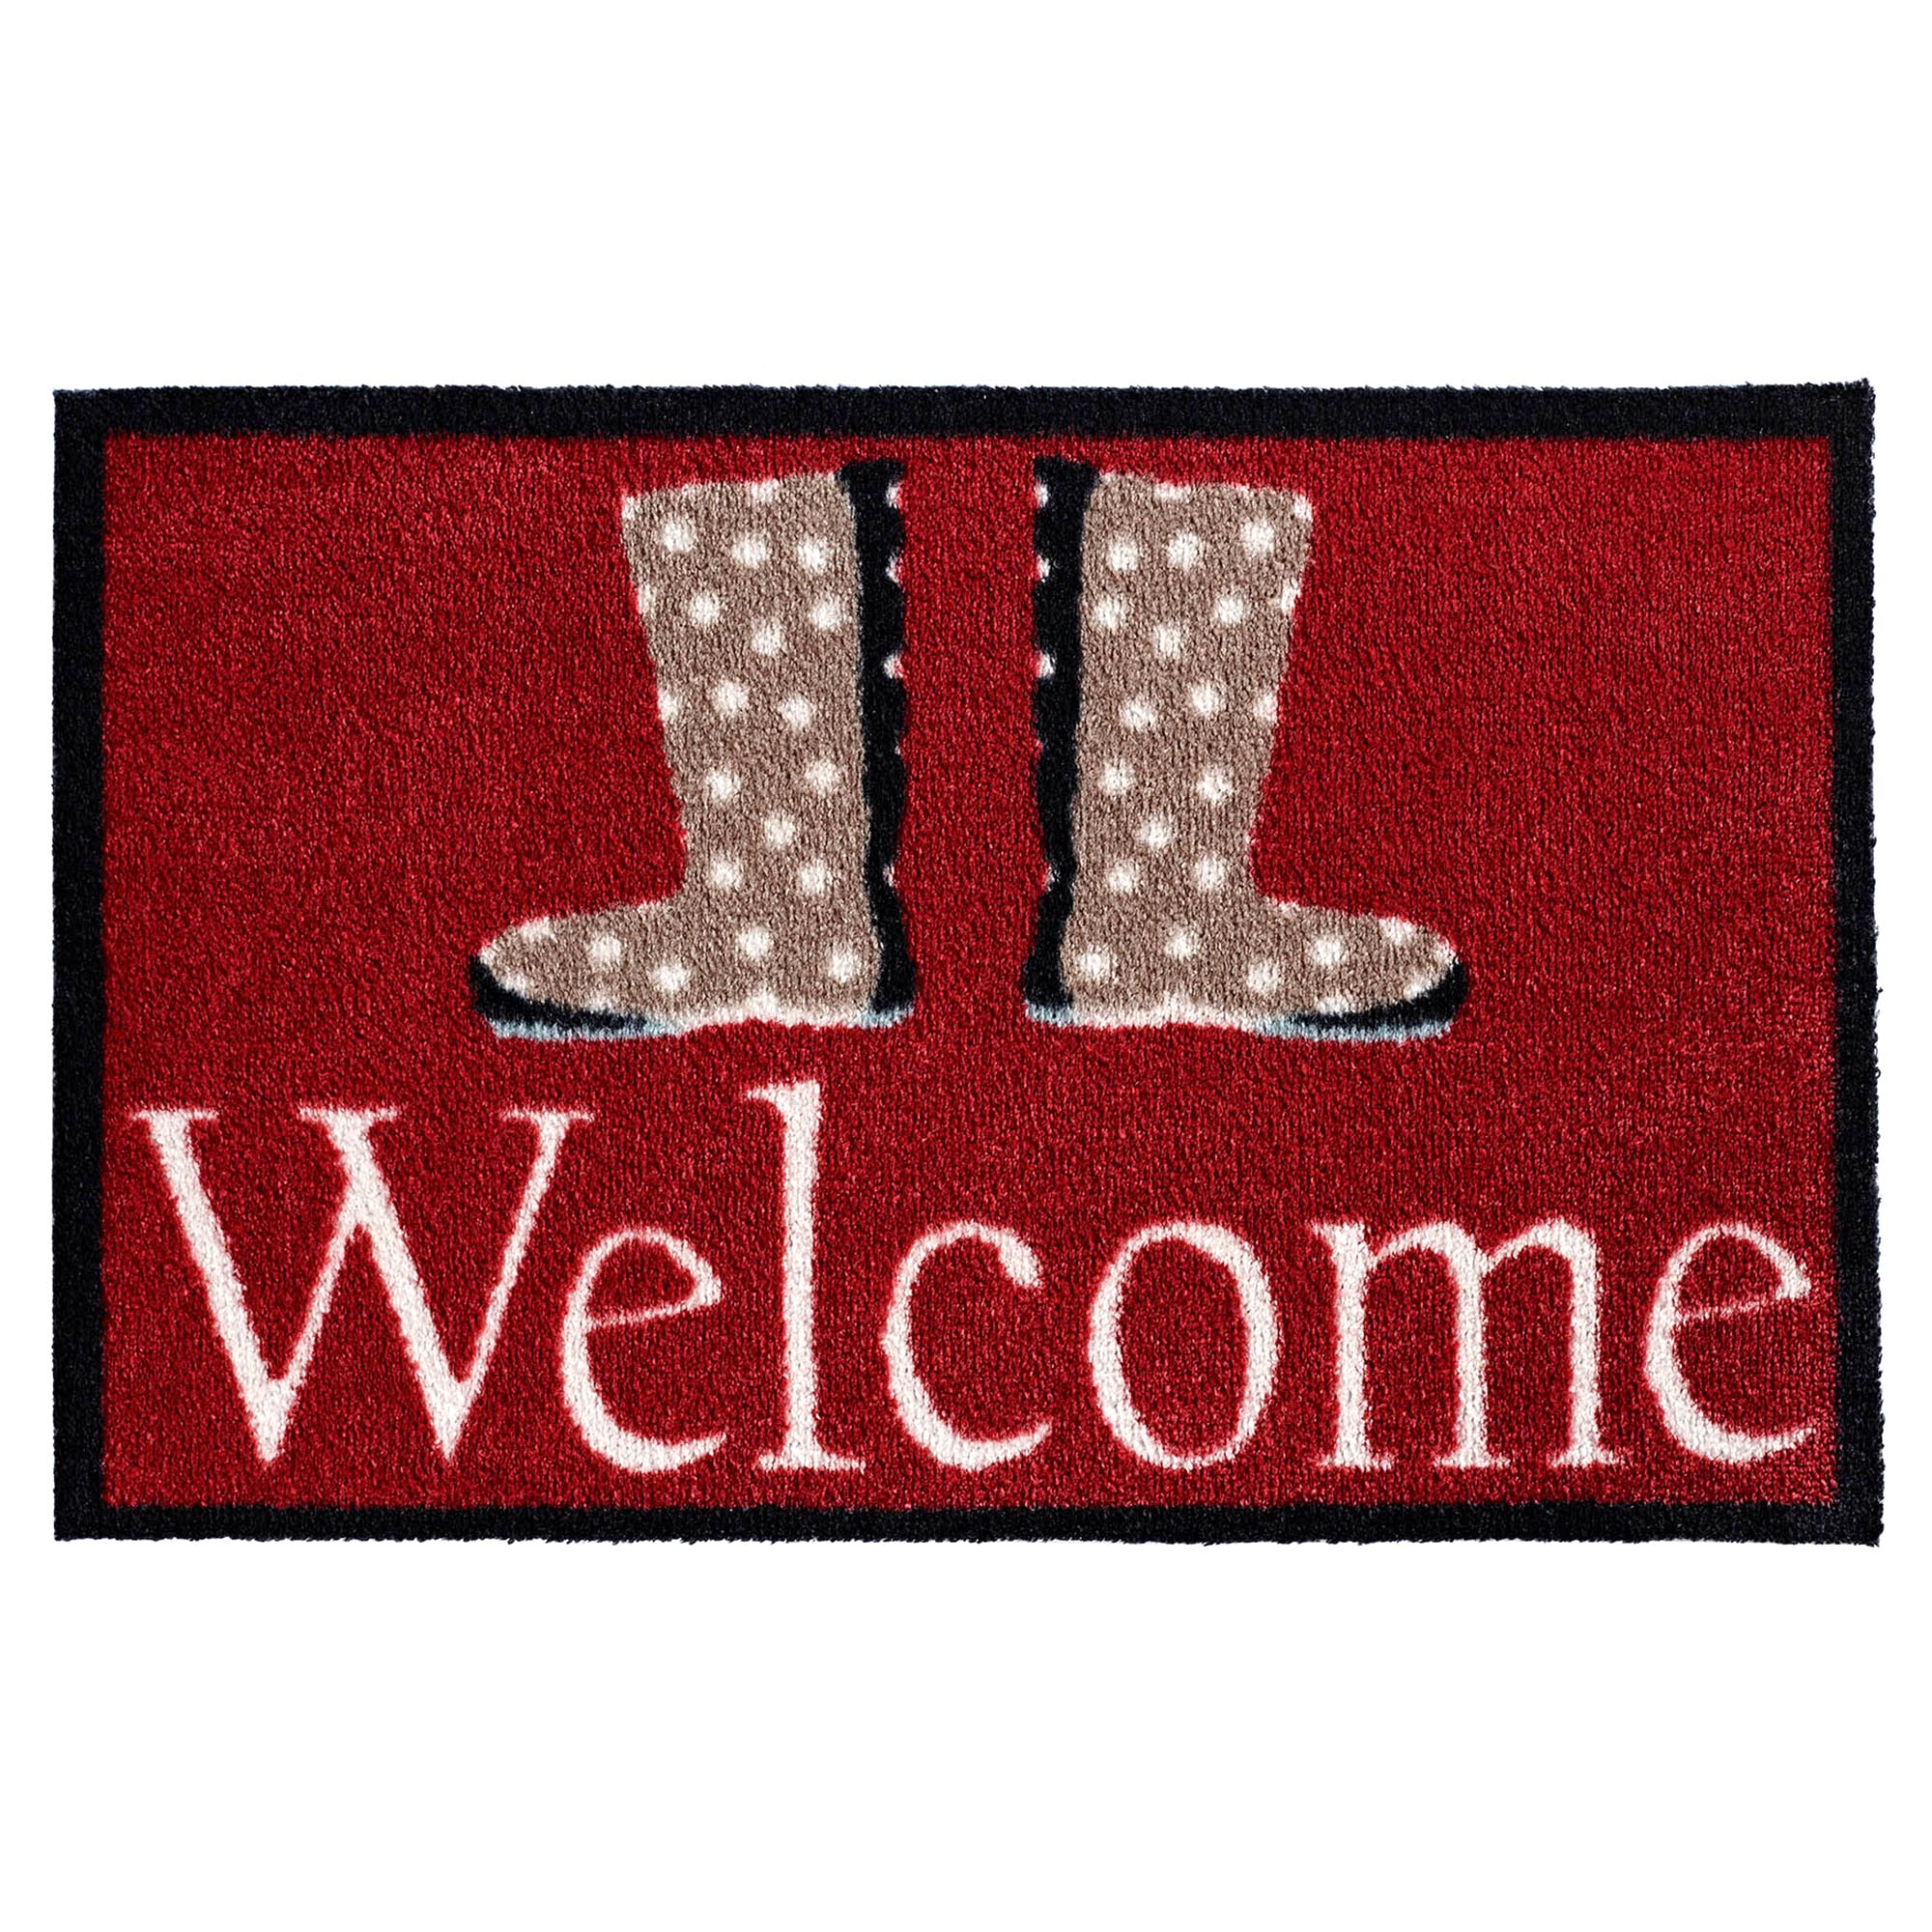 Marvel Welcome Mat